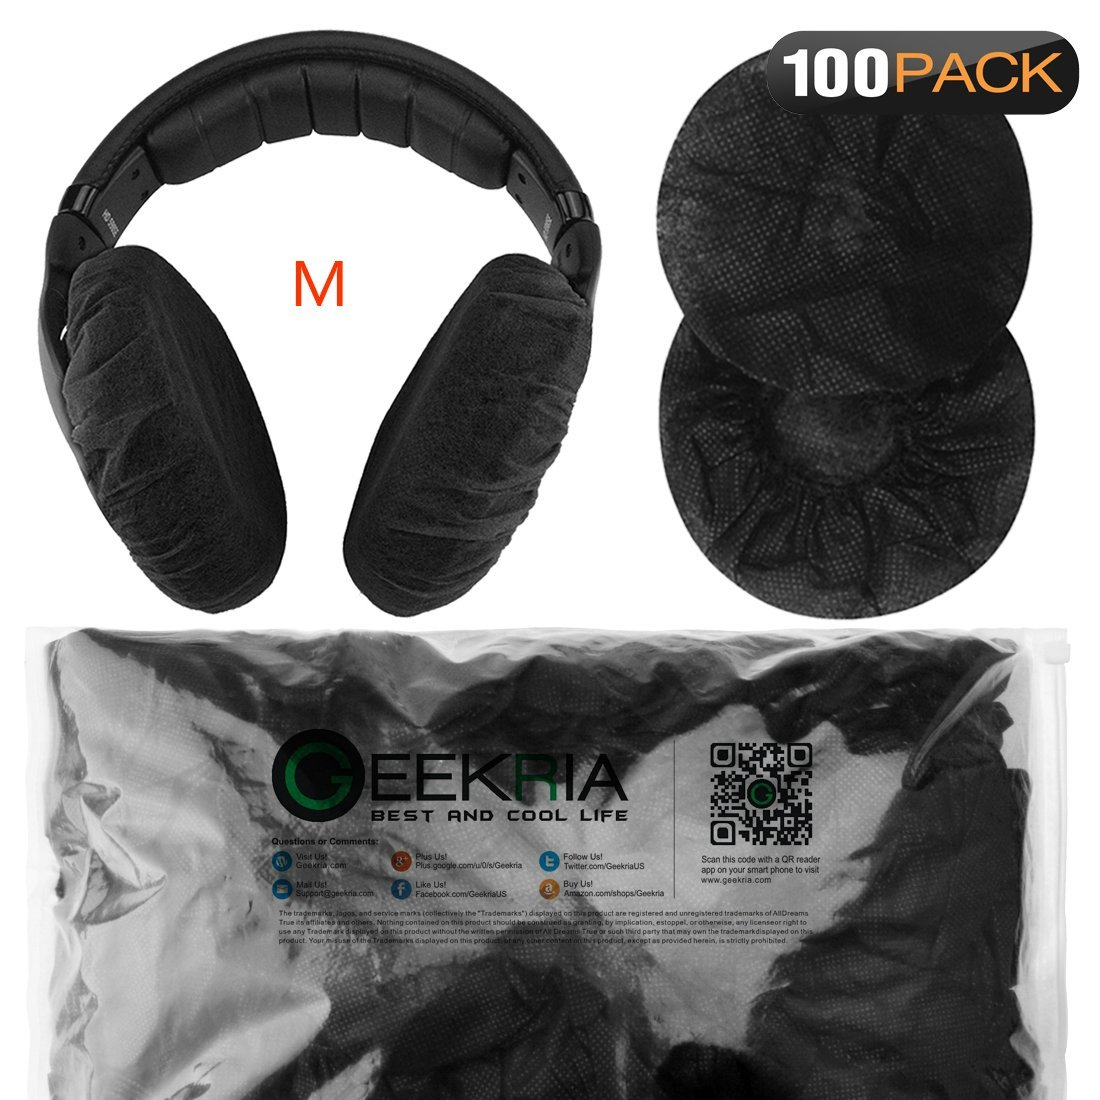 Stretchable Headphone Covers / Disposable Sanitary Earcup Earpad Covers Fits Medium / Large-Sized Headset 200 pcs (100 Pairs) White Geekria PJZ2406